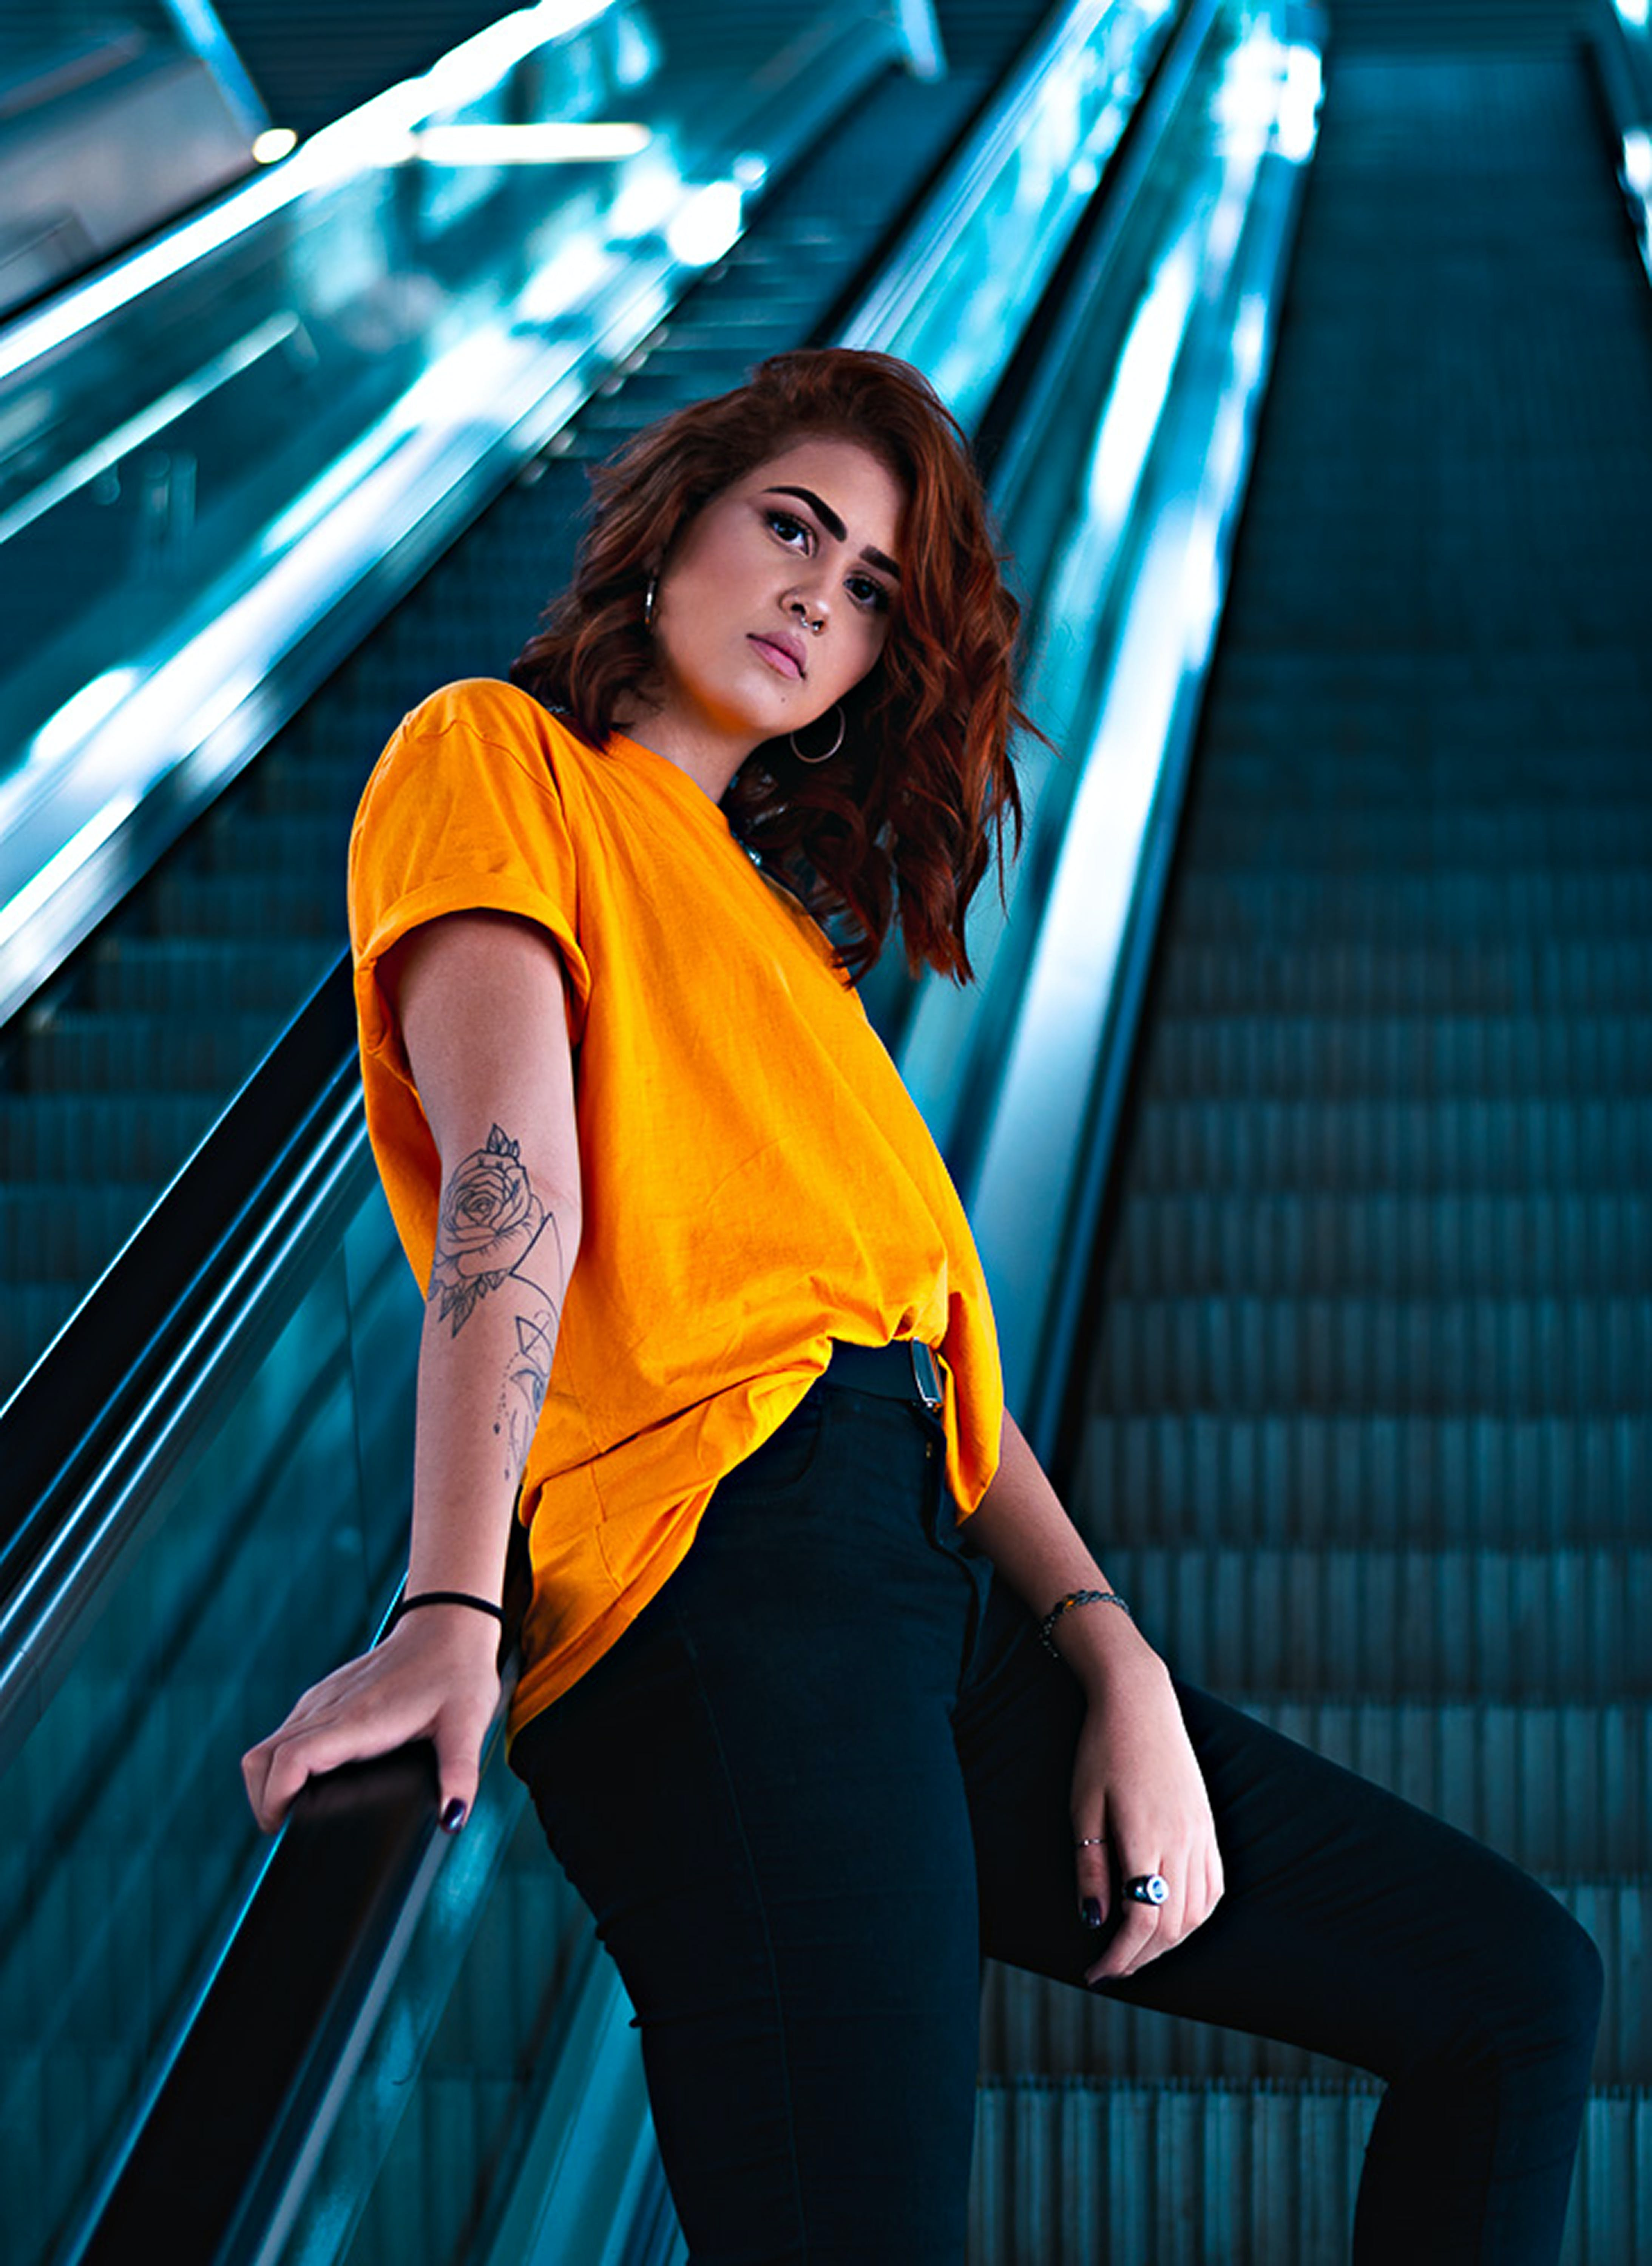 Selective Focus Photography Of Woman Wearing Yellow T-shirt On Escalator